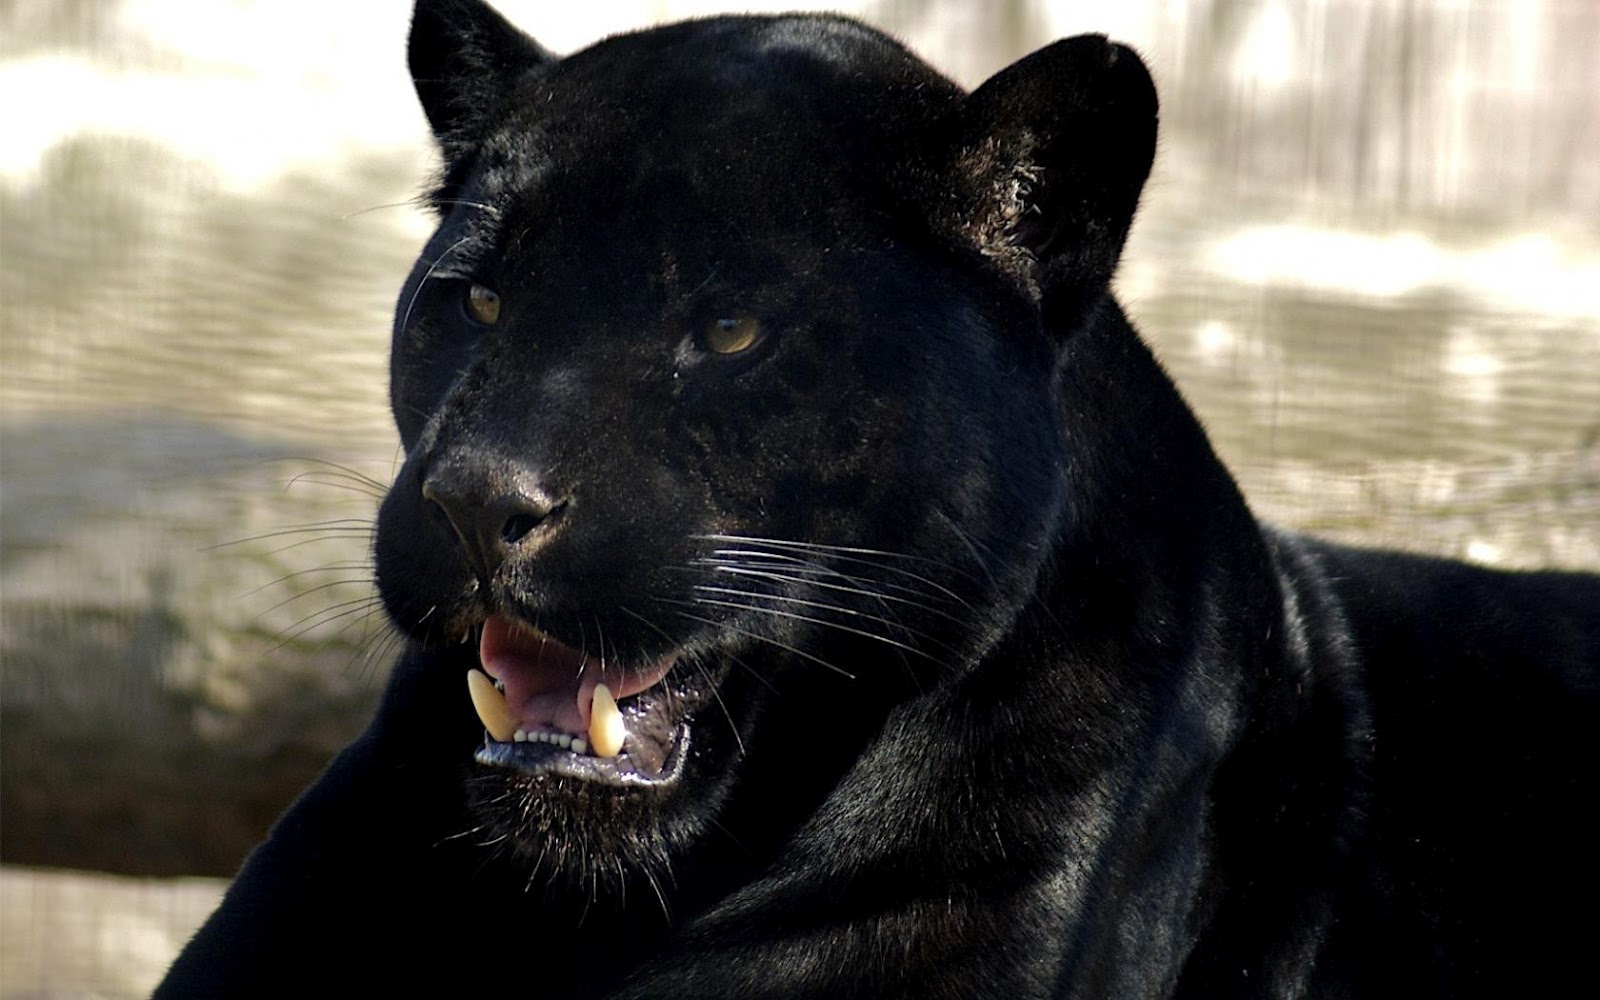 http://1.bp.blogspot.com/-q6Heapf1RQM/T_k8GNLEEZI/AAAAAAAACdg/l0DrVbNpd88/s1600/Black_Panther_Sharp_Teeth_HD_Desktop_Wallpaper-HidefWall.Blogspot.Com.jpg